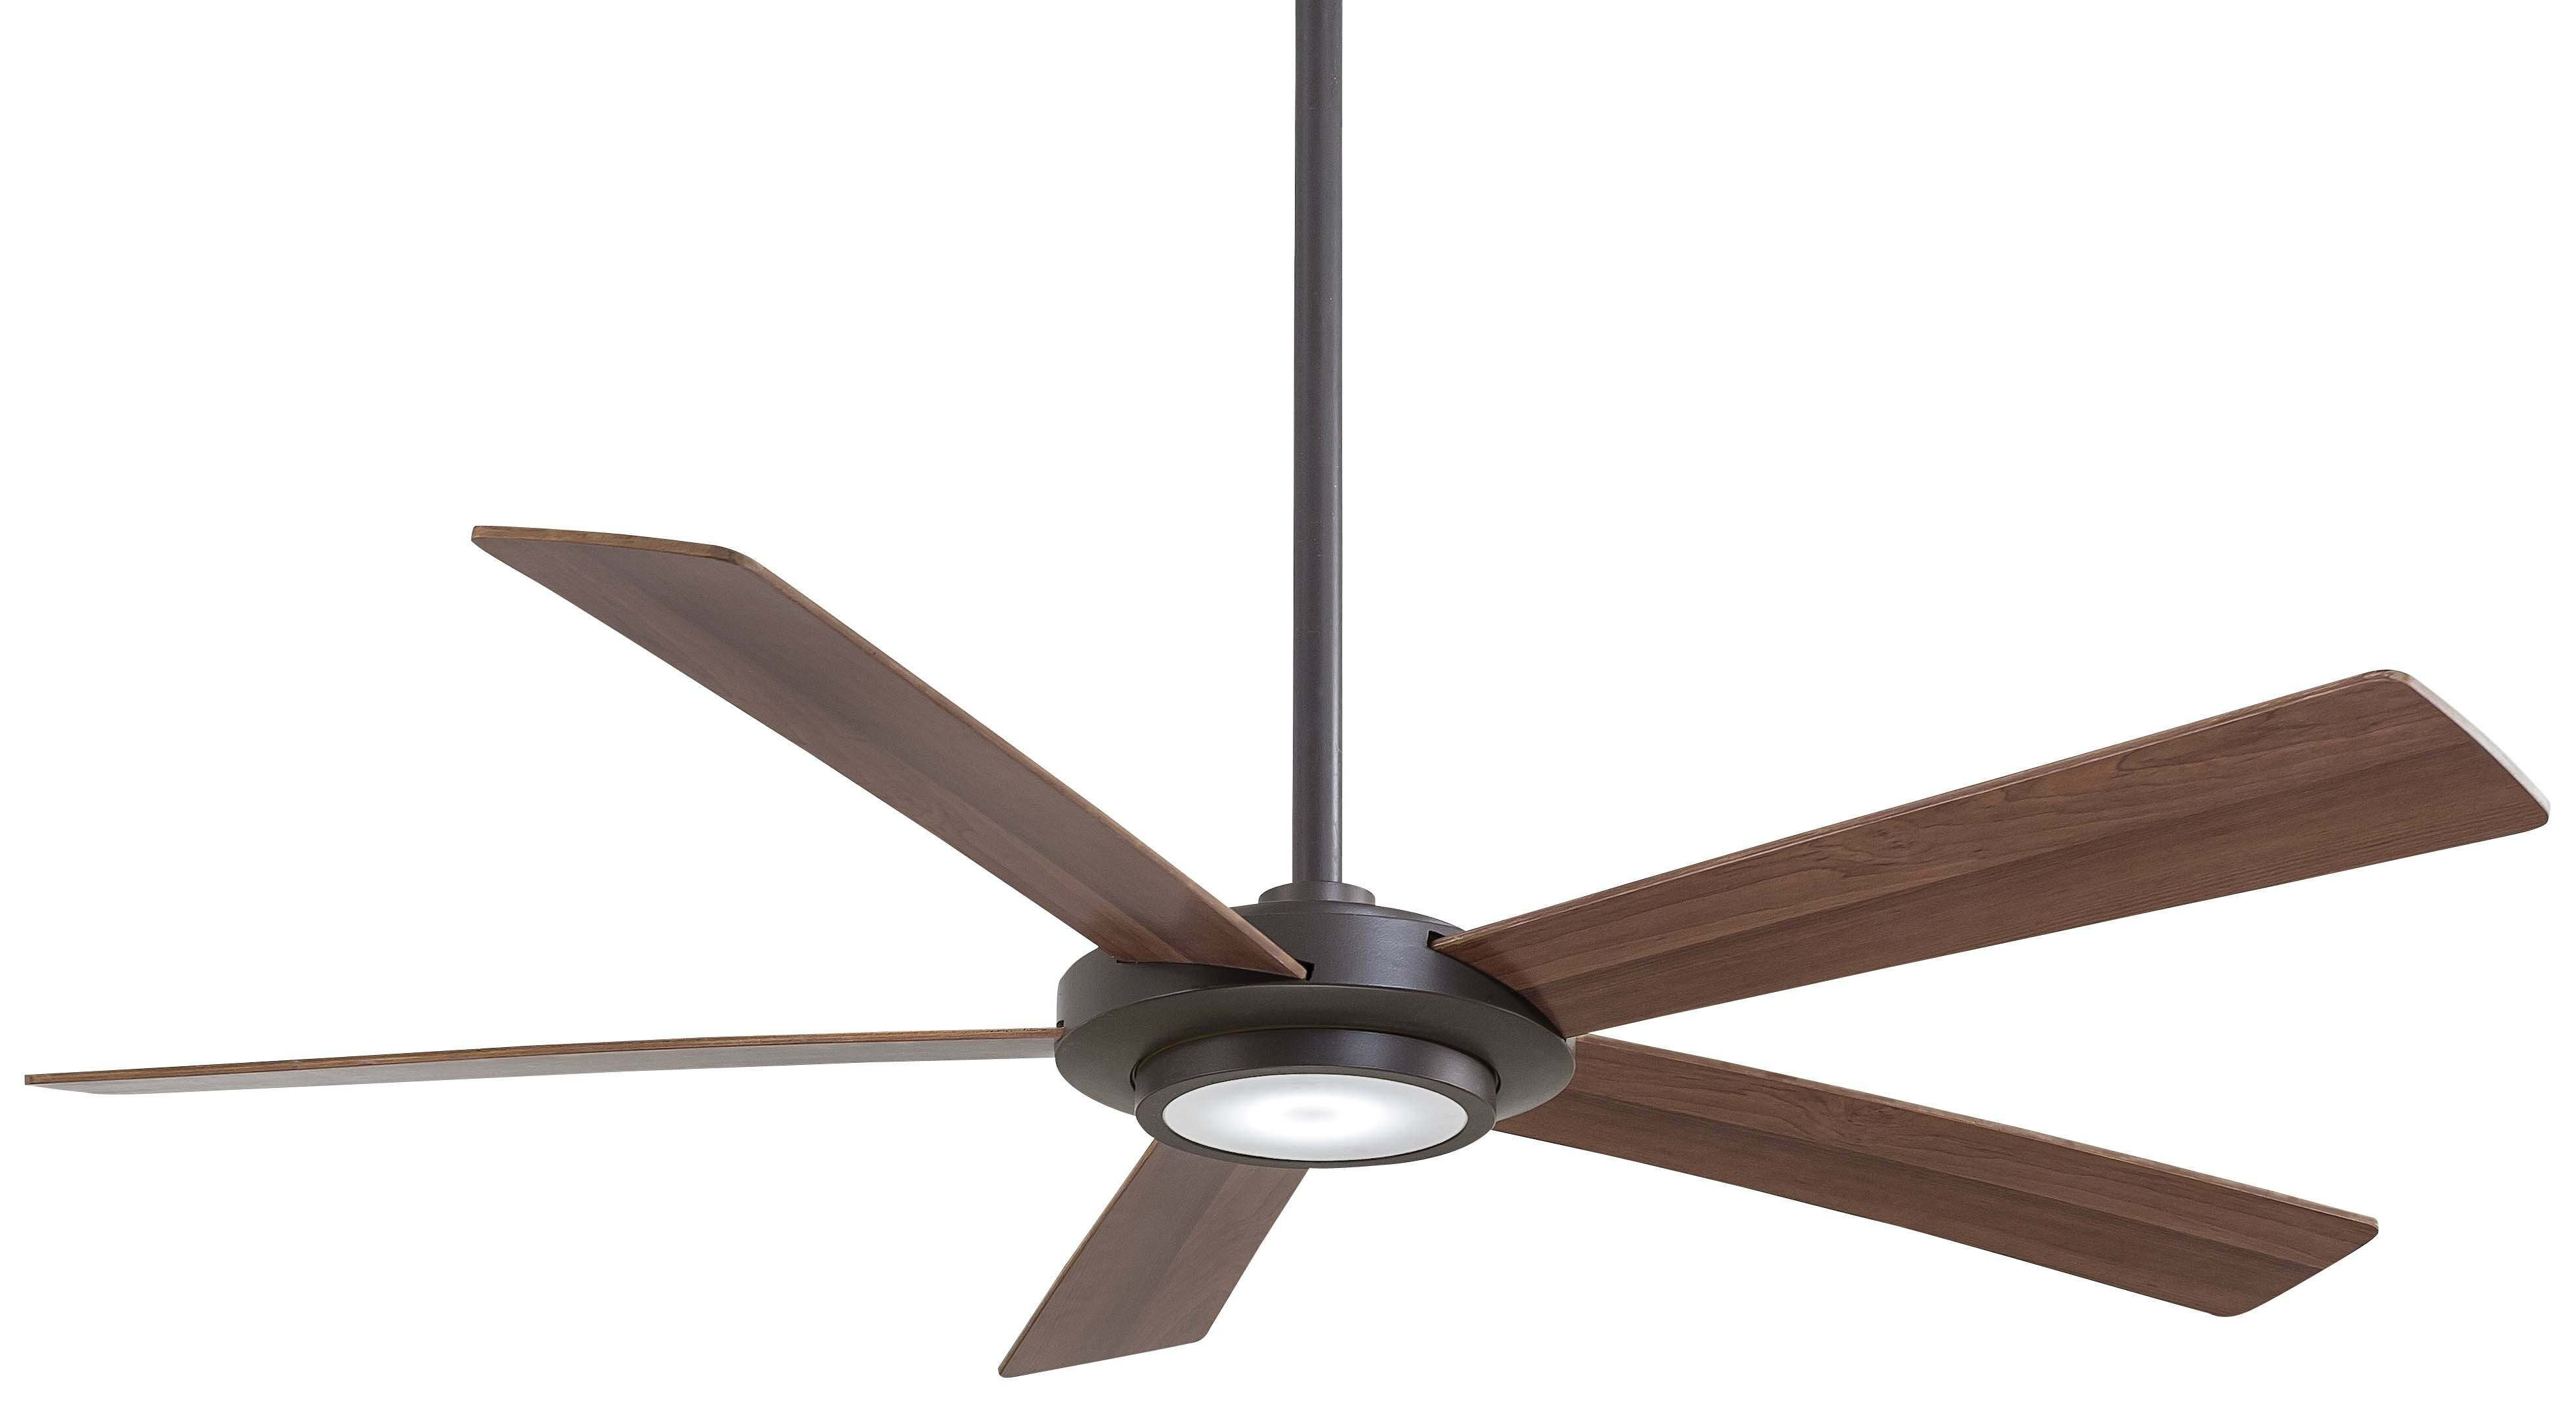 Minka Aire 52 Sabot 5 Blade Led Ceiling Fan With Remote Reviews Wayfair